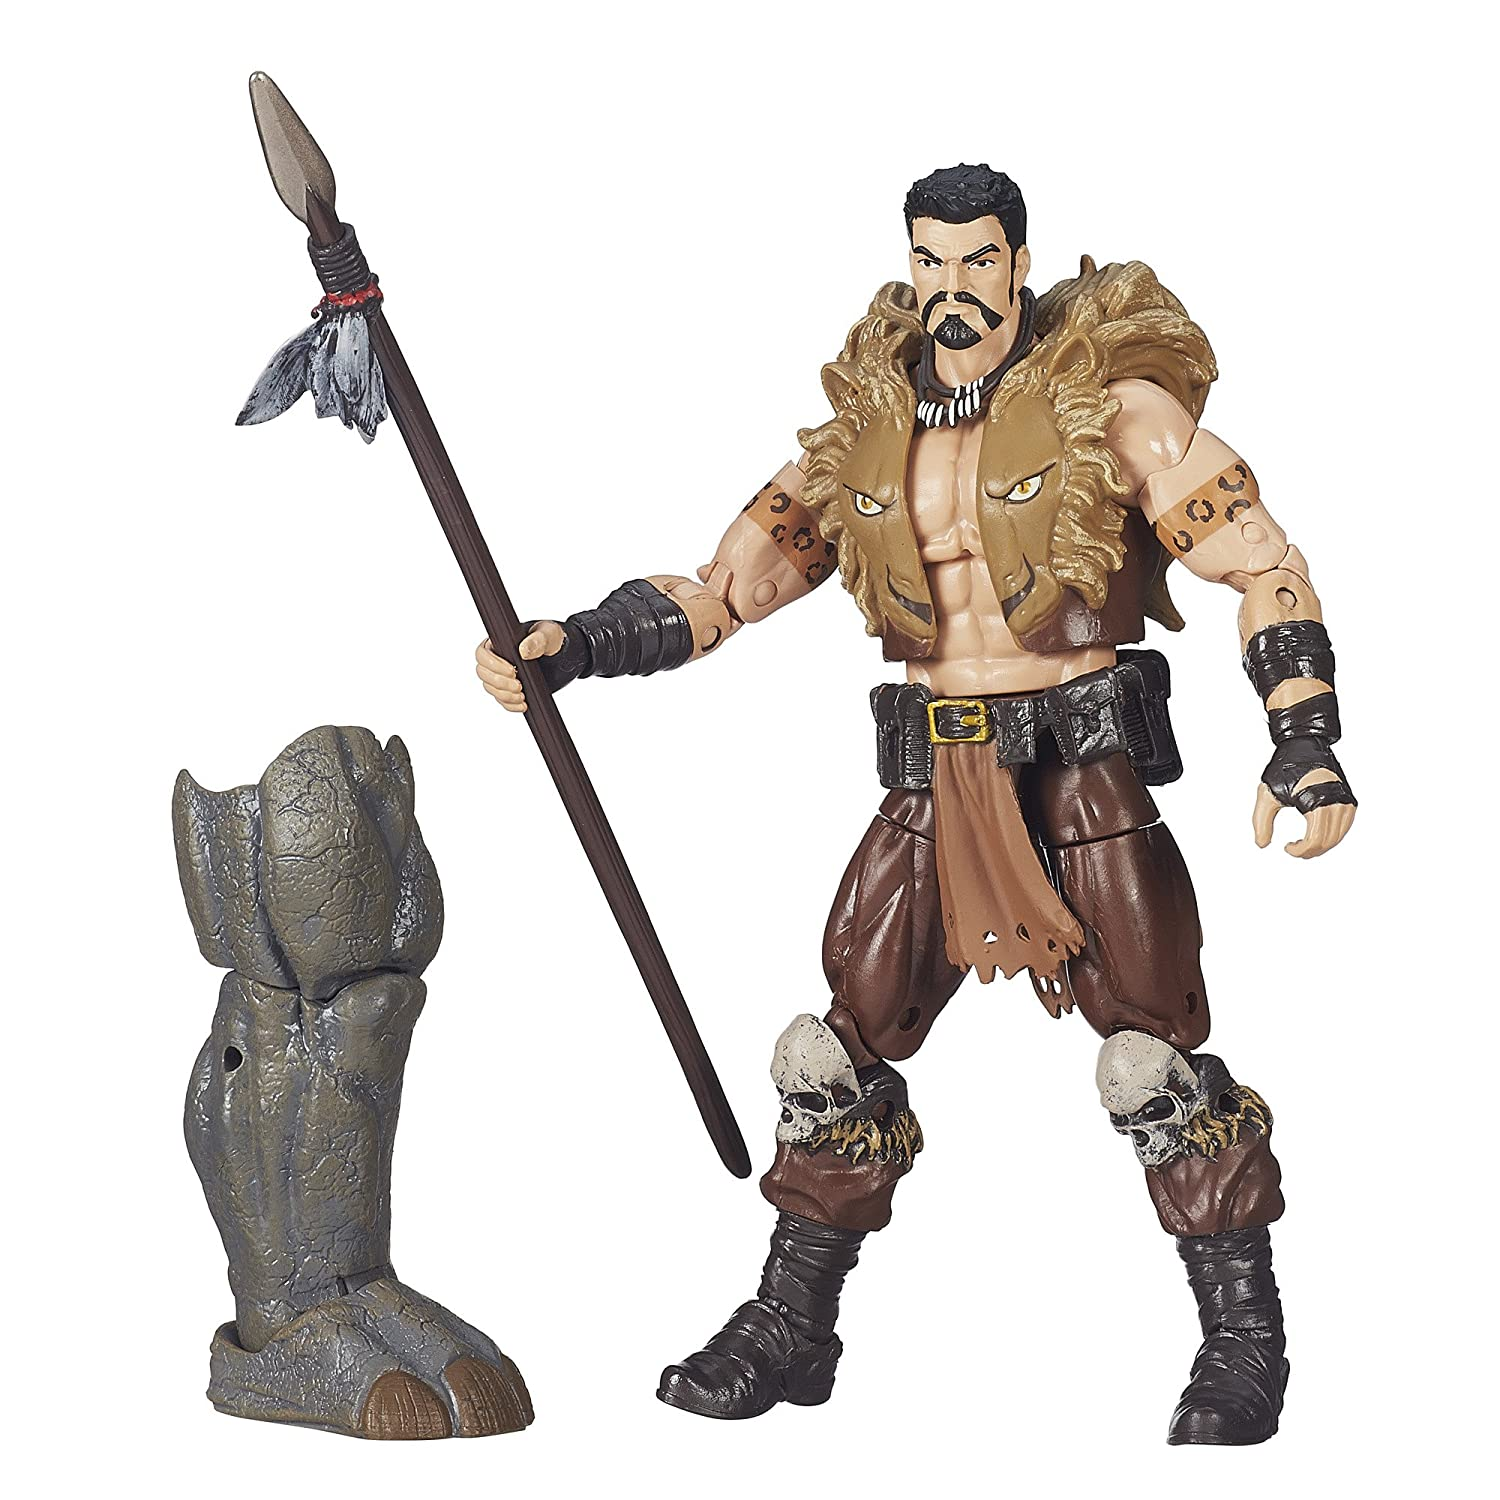 Marvel Legends 2015 Spider-Man Infinite Serie 2 Actionfiguren: Kraven jetzt kaufen